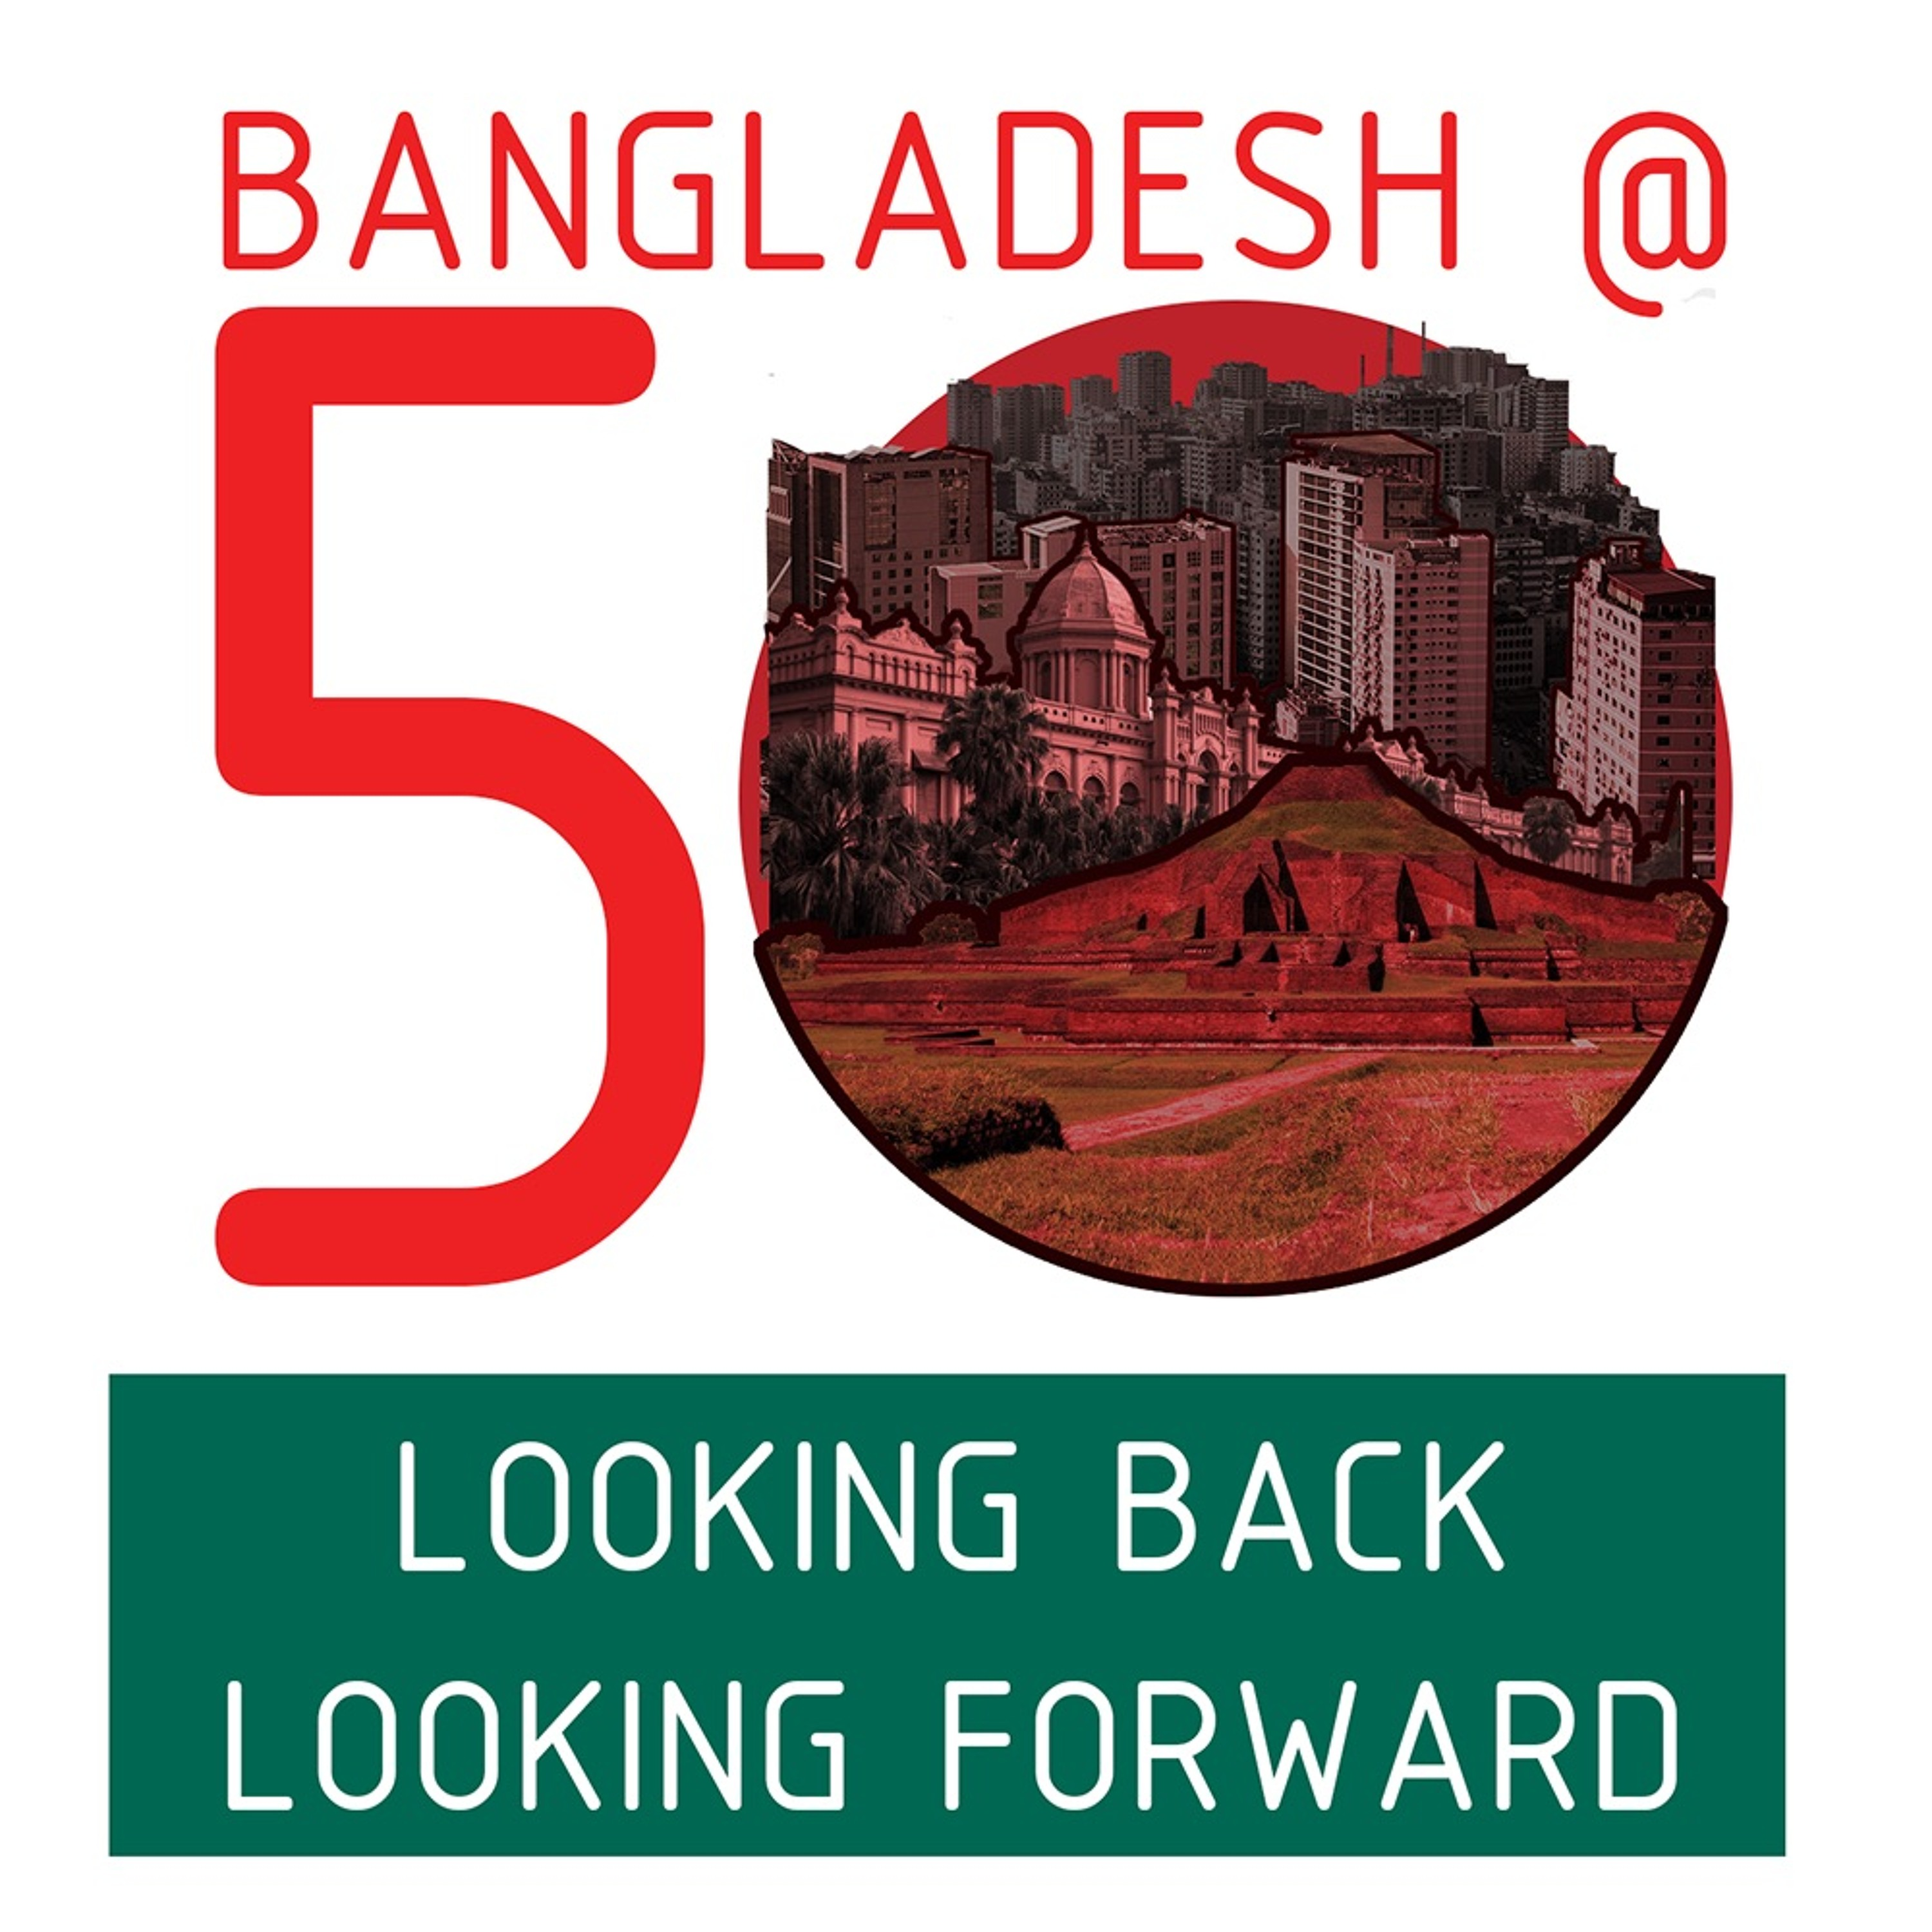 Bangladesh at 50: Women's Empowerment: From Home to Factory and Beyond